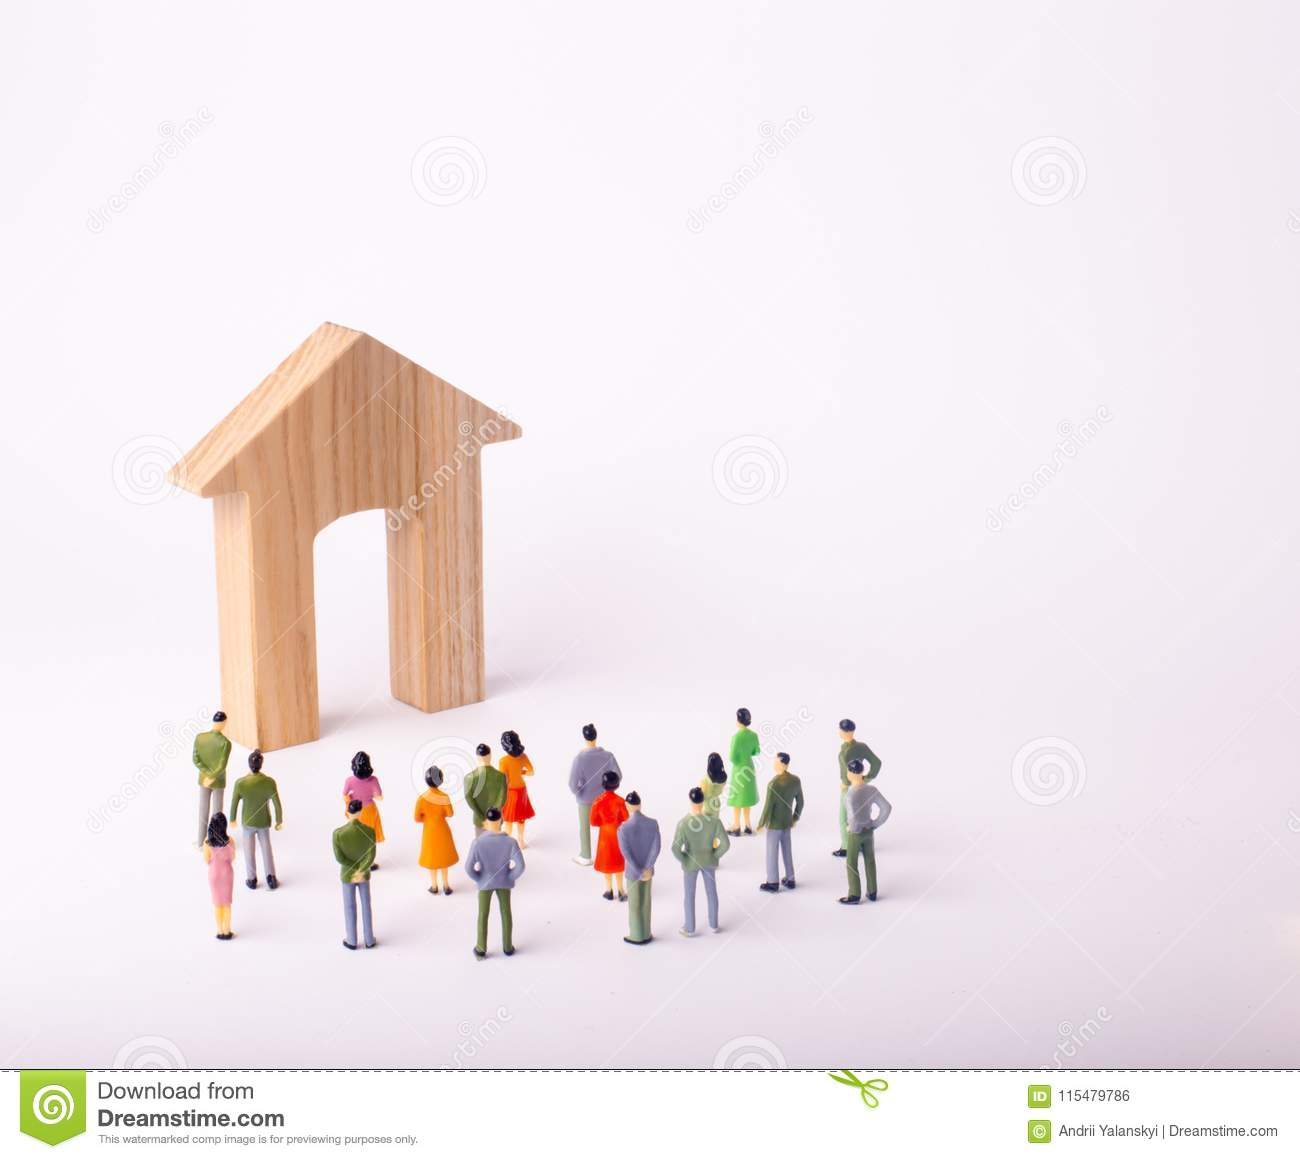 A Crowd Of People Standing And Looking At A Wooden House